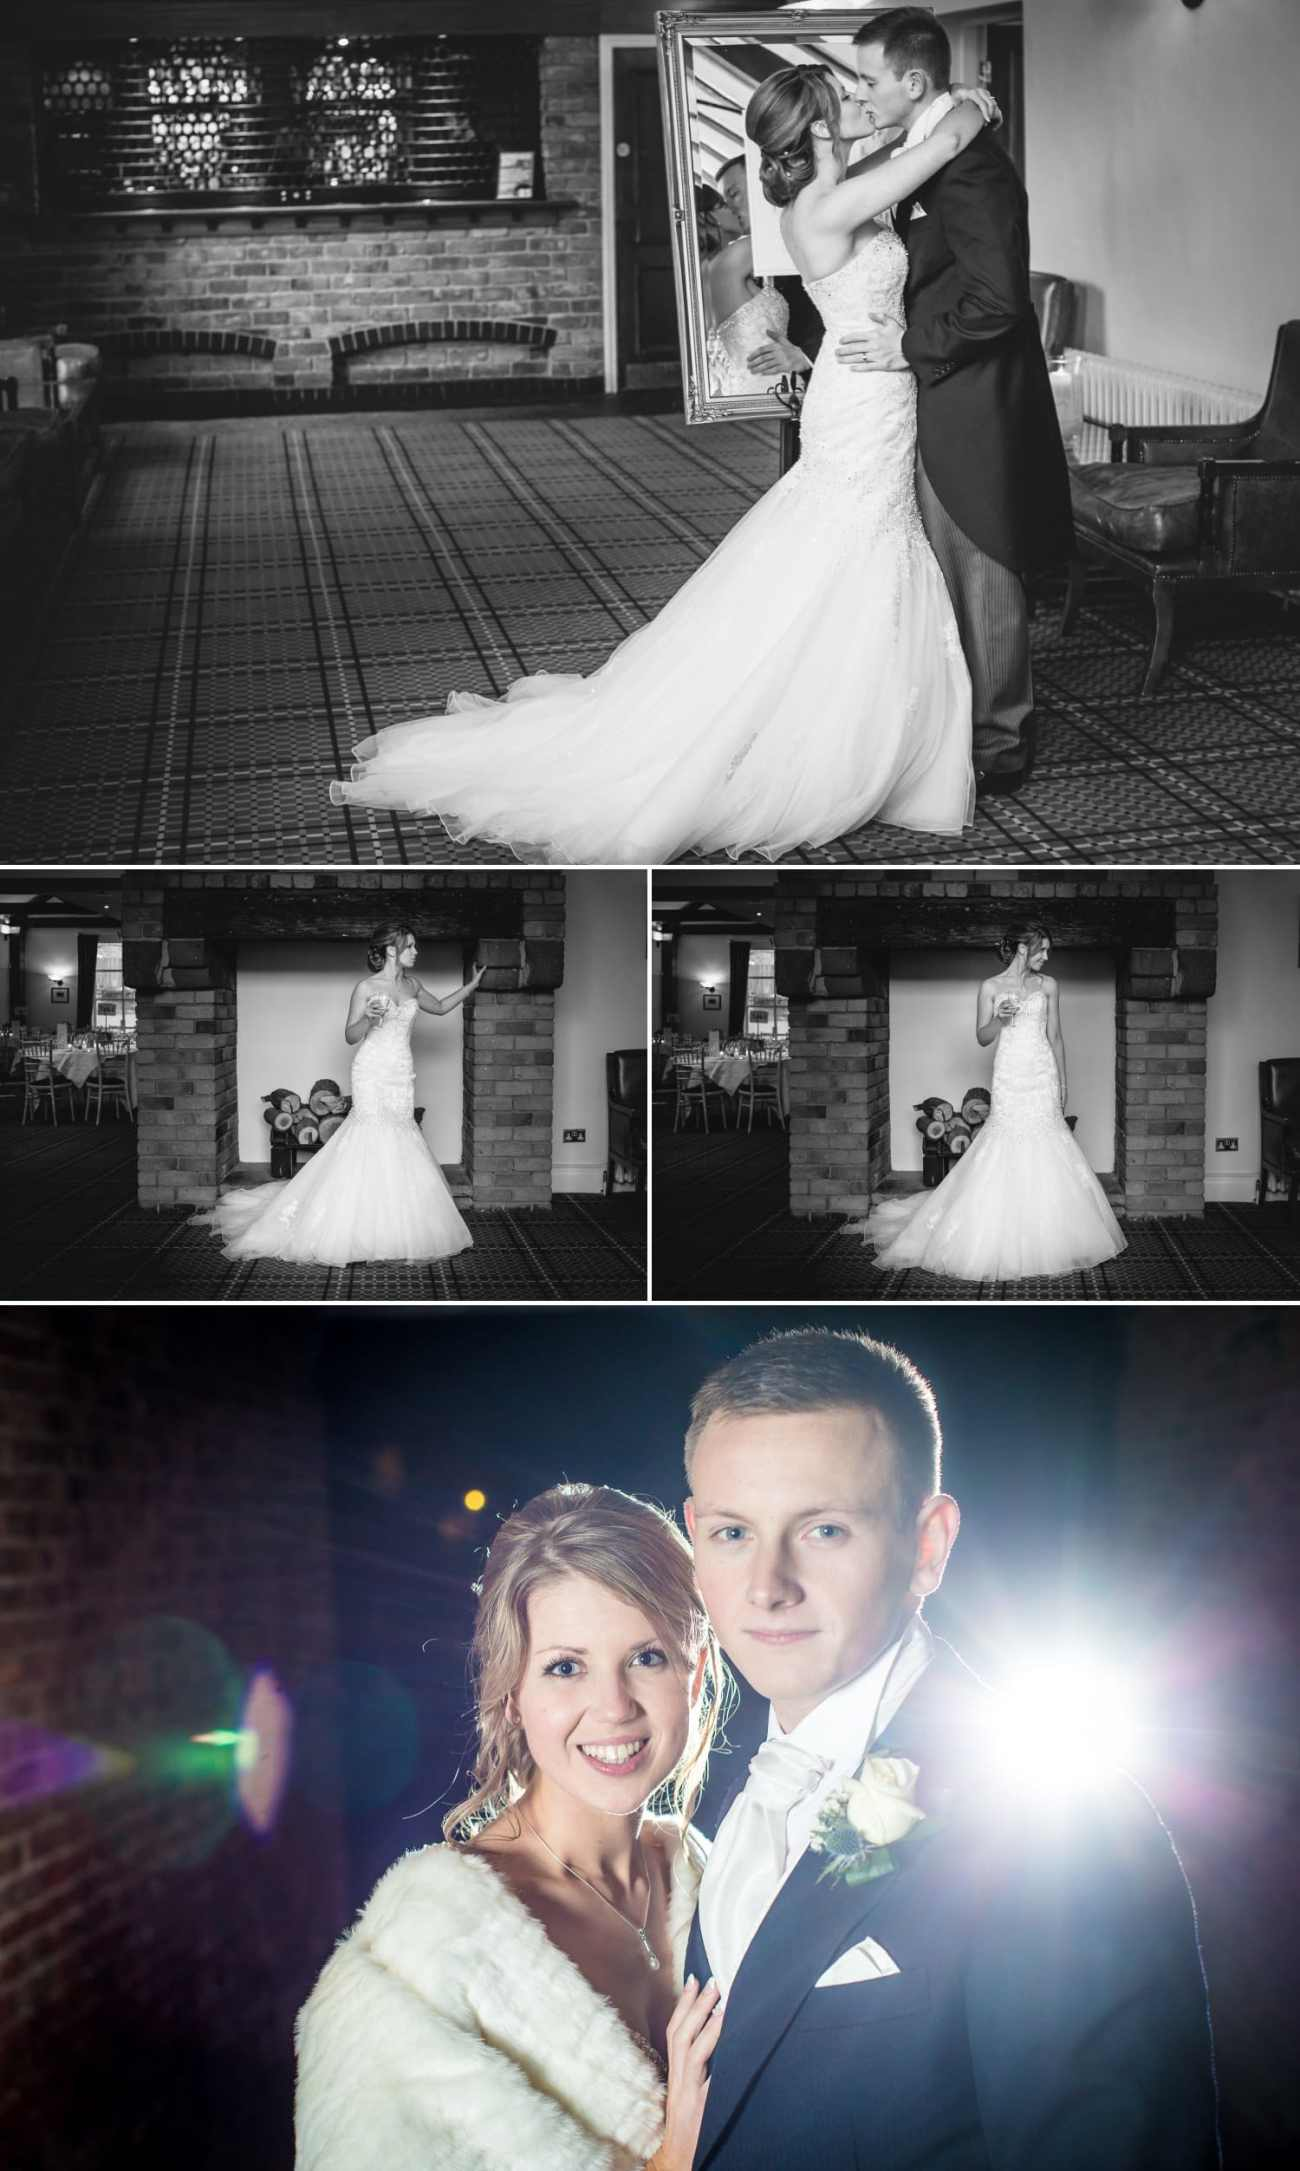 Wedding photography portraits at the reception in Carden Parks shooting lodge, Chester, Cheshire